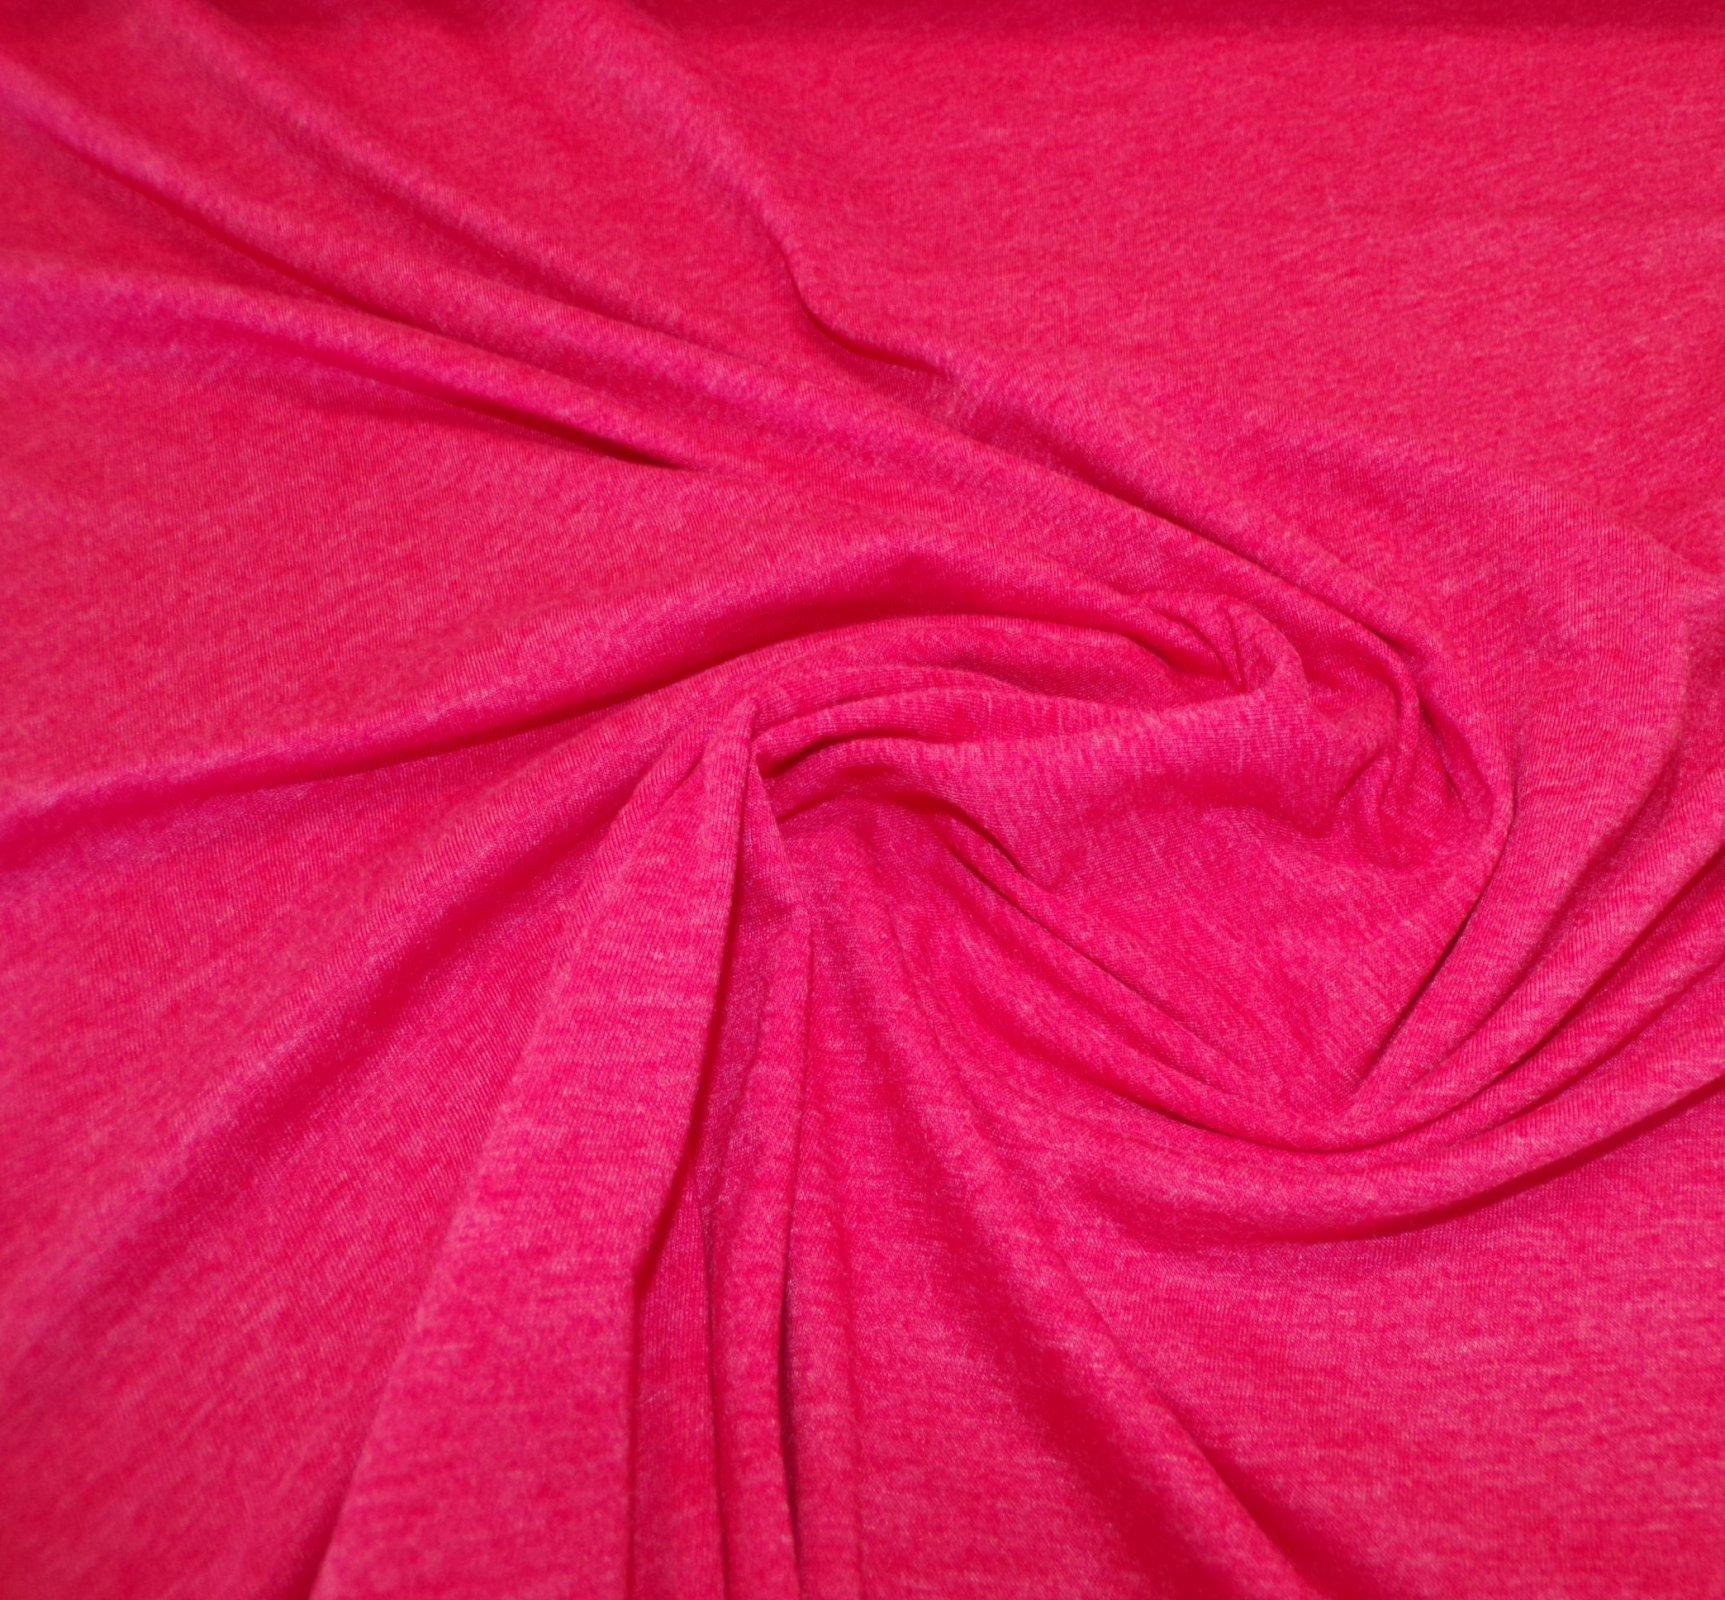 Polyester Cotton Jersey - Heathered Red